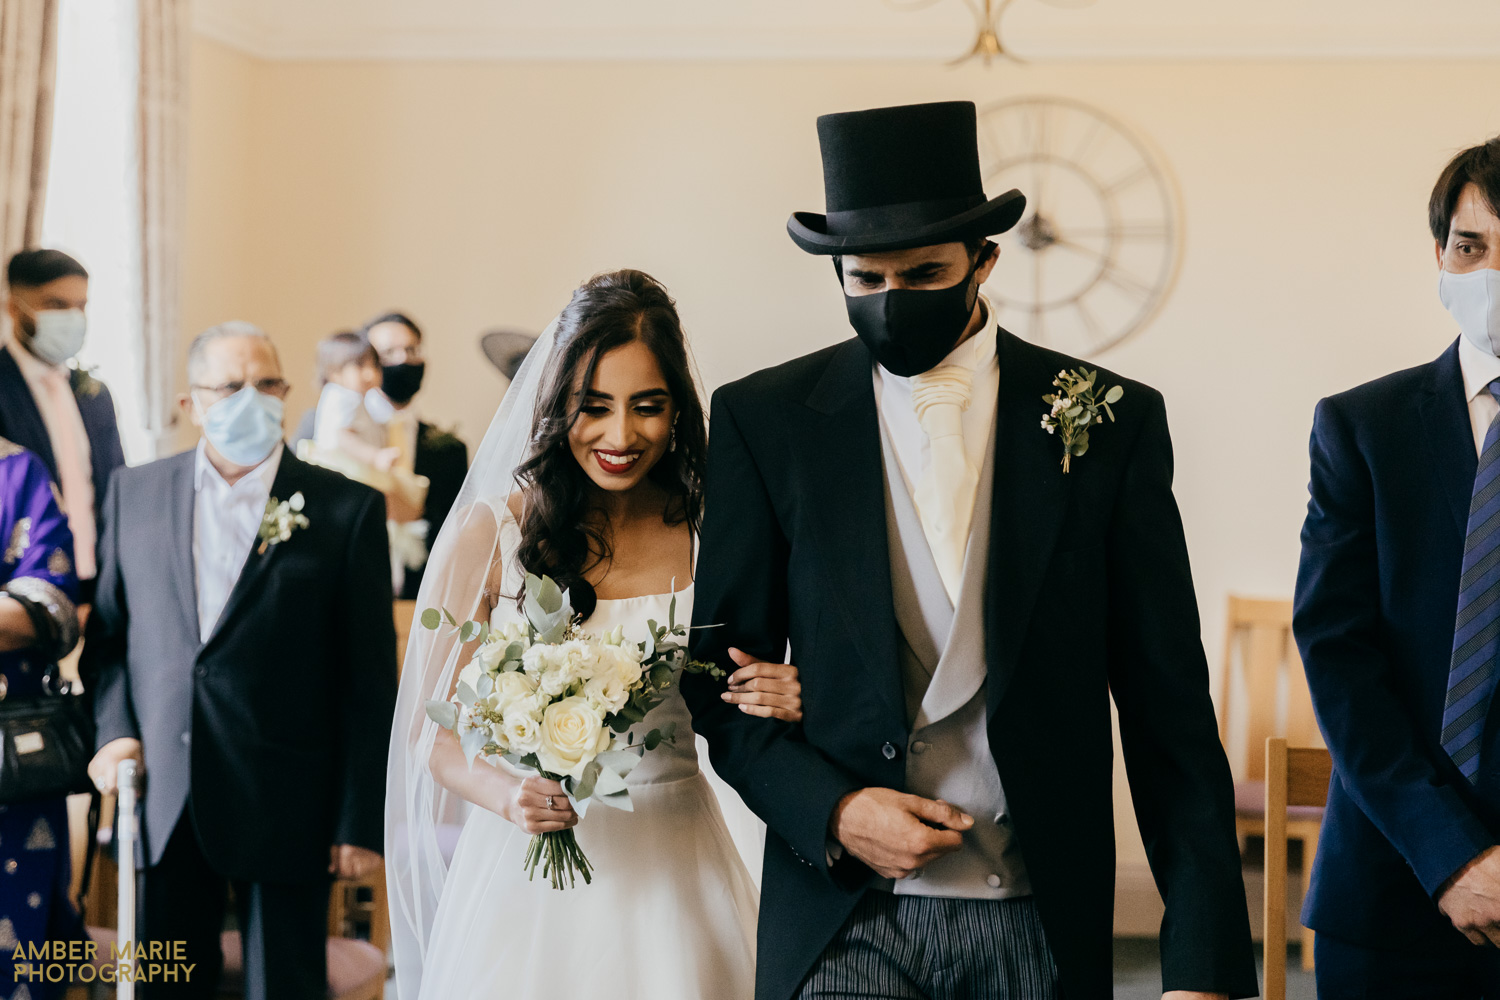 Candid photo of bride and dad walking down aisle